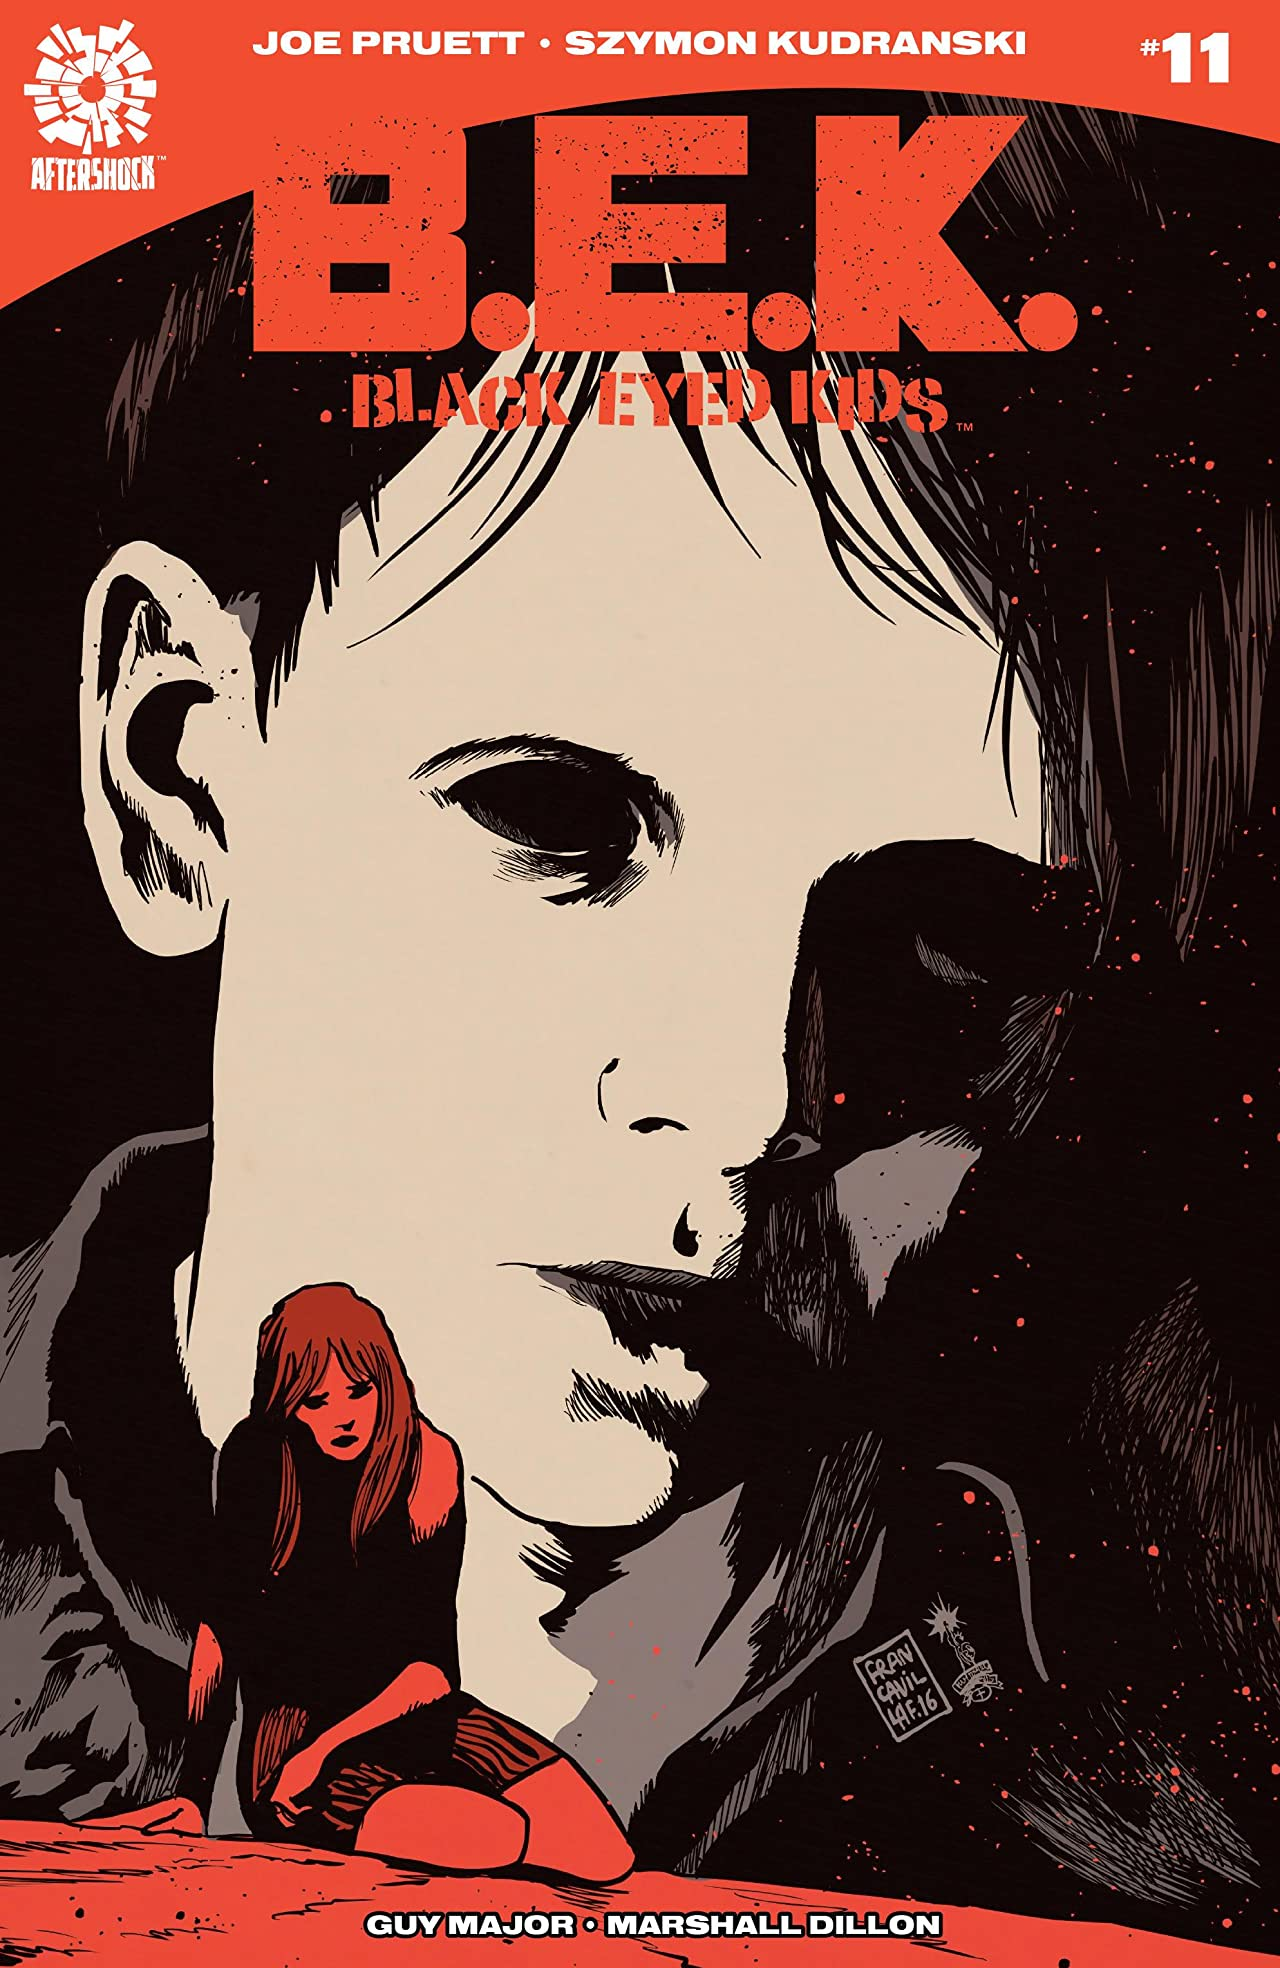 Black-Eyed Kids #11